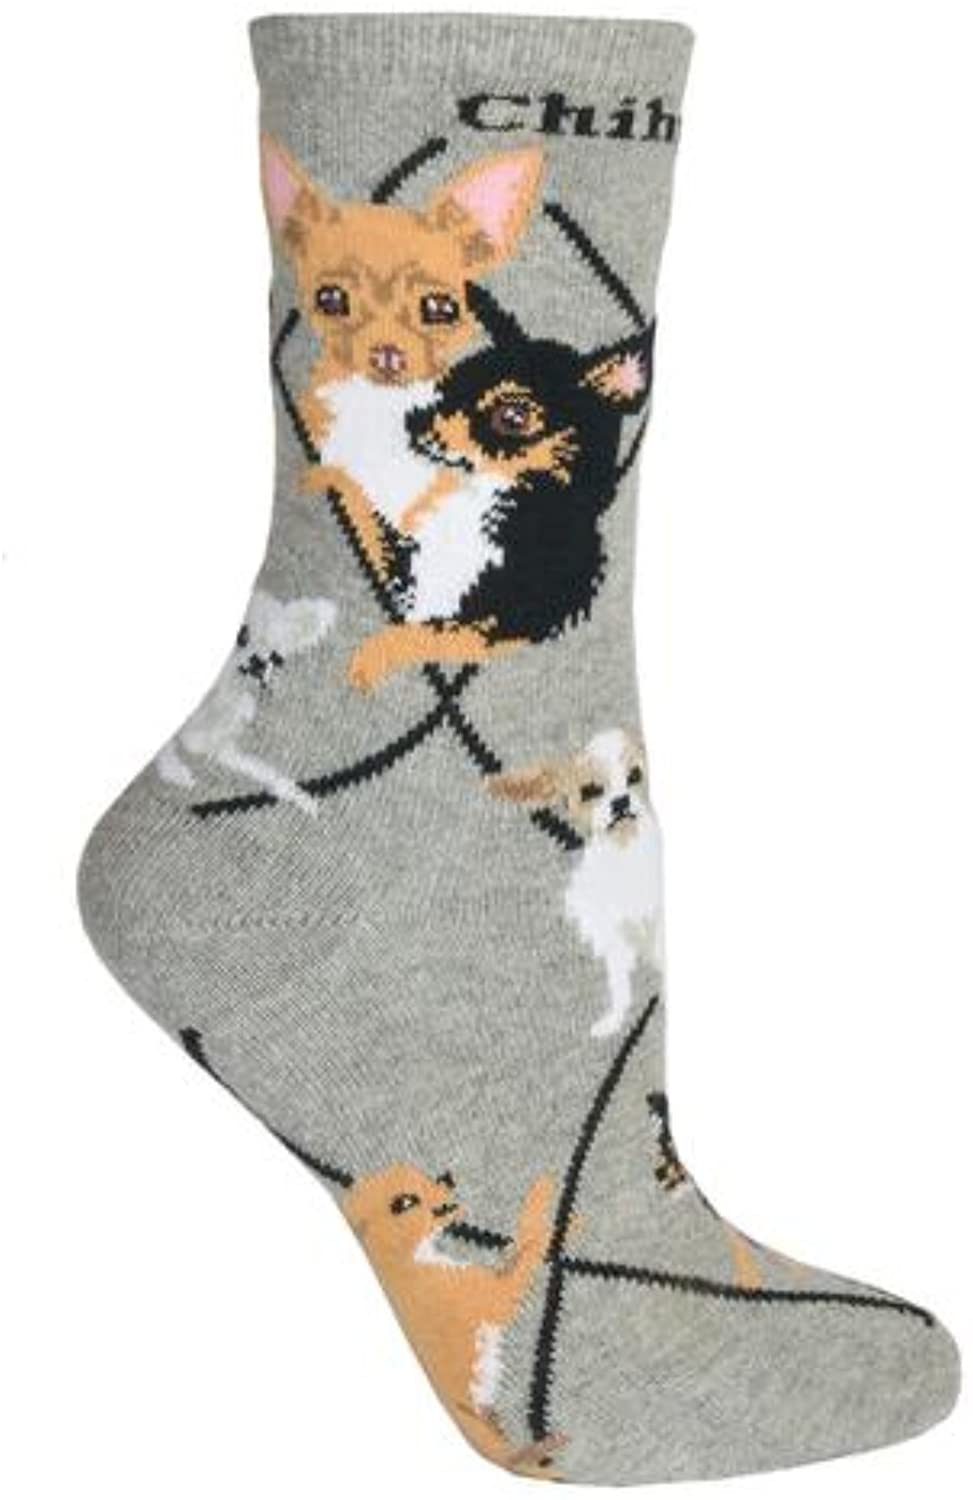 Wheelhouse Designs Women's Chihuahua Socks Size 9-11